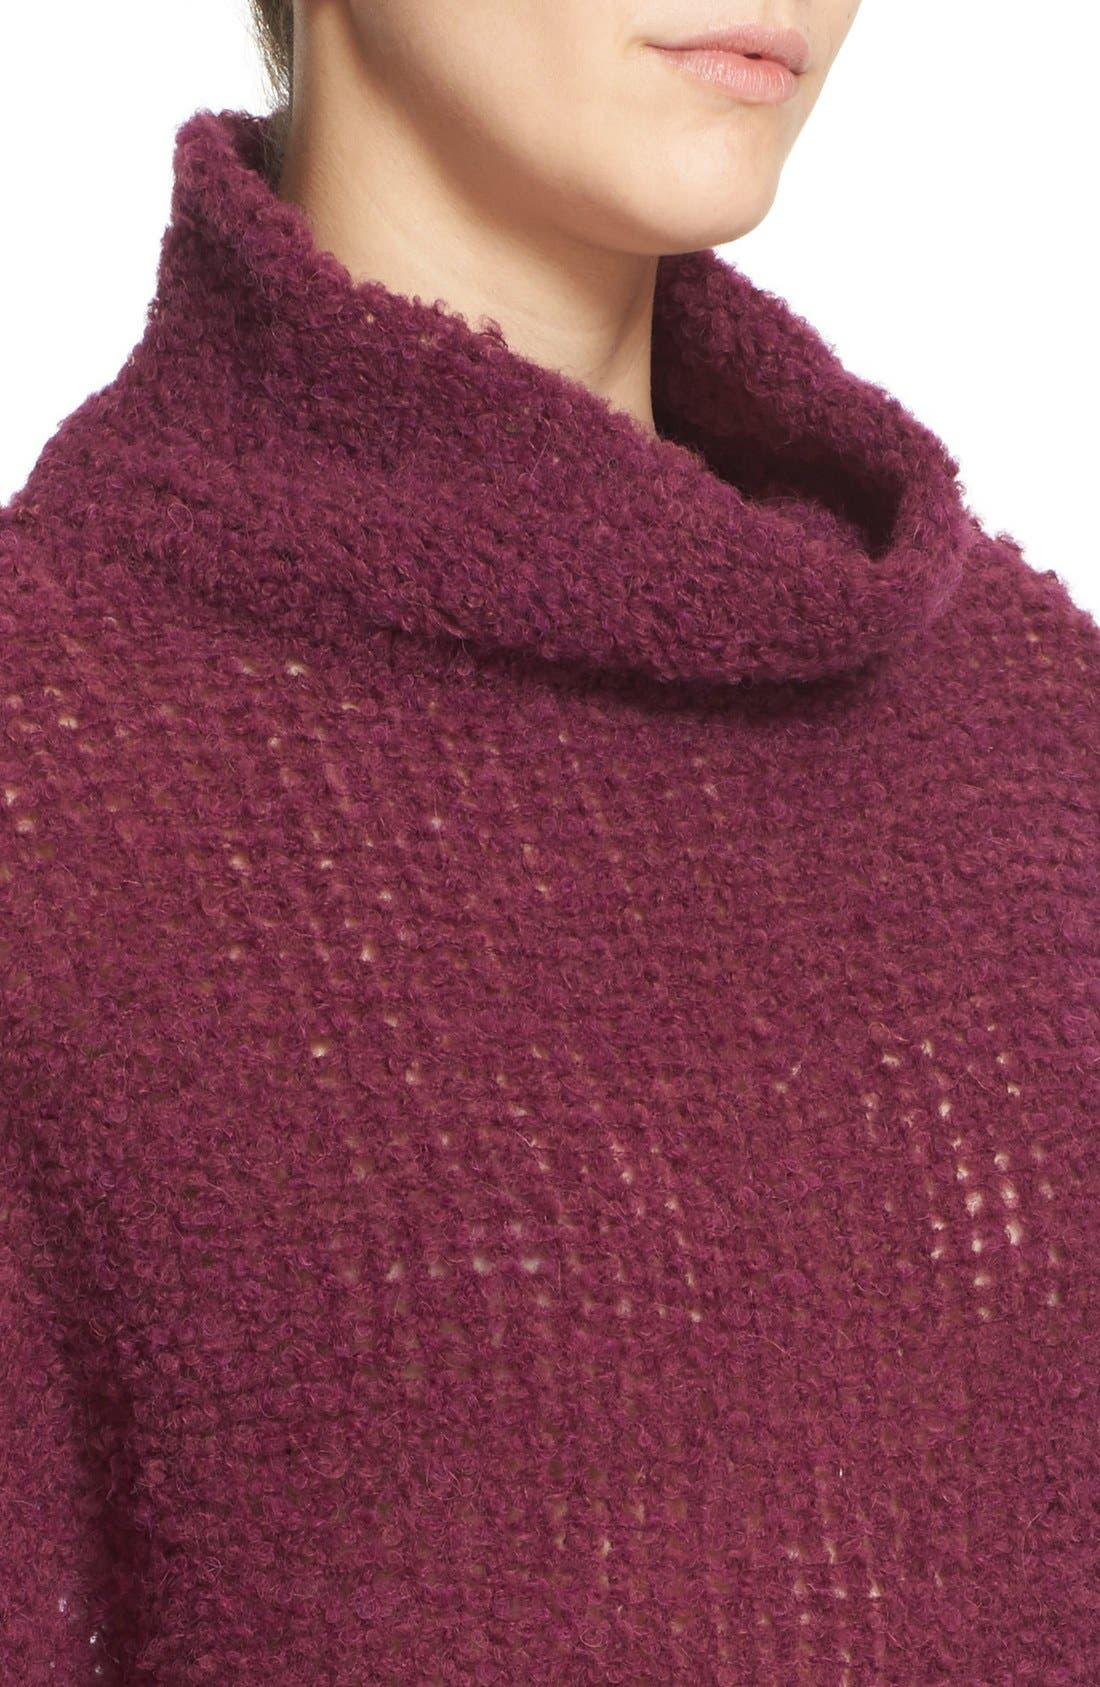 'She's All That' Knit Turtleneck Sweater,                             Alternate thumbnail 19, color,